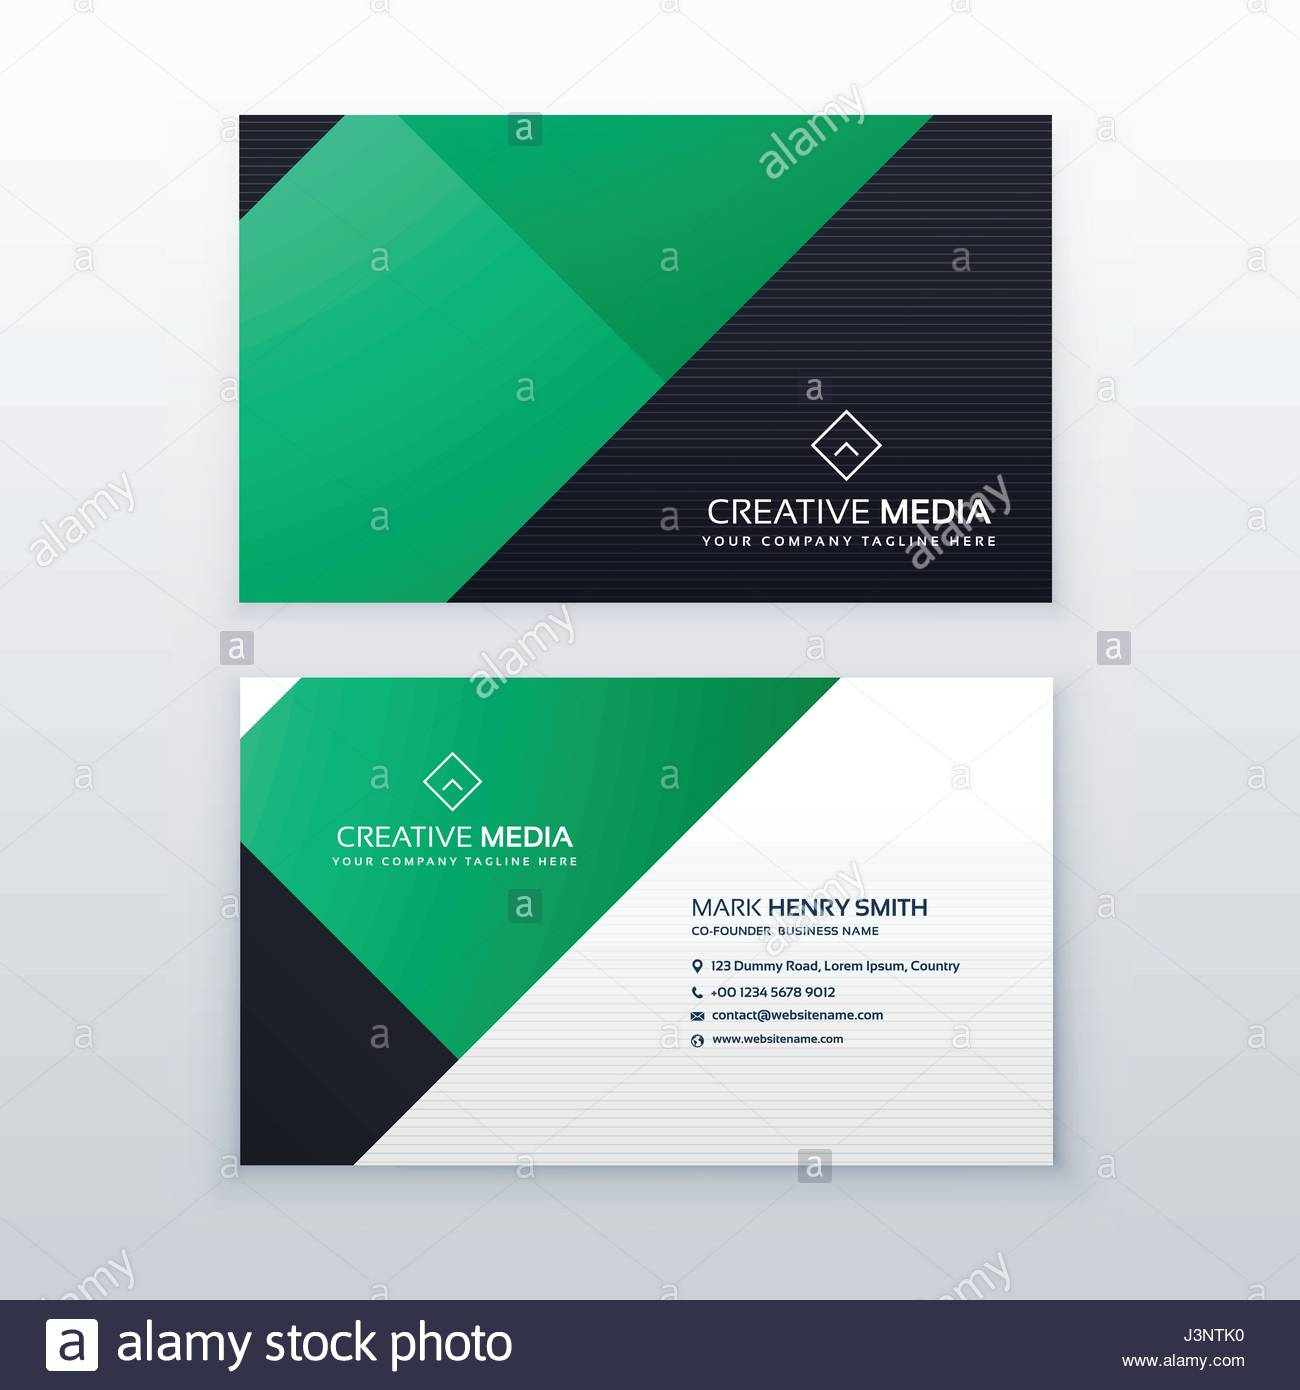 Minimal green geometric business card design template stock vector minimal green geometric business card design template reheart